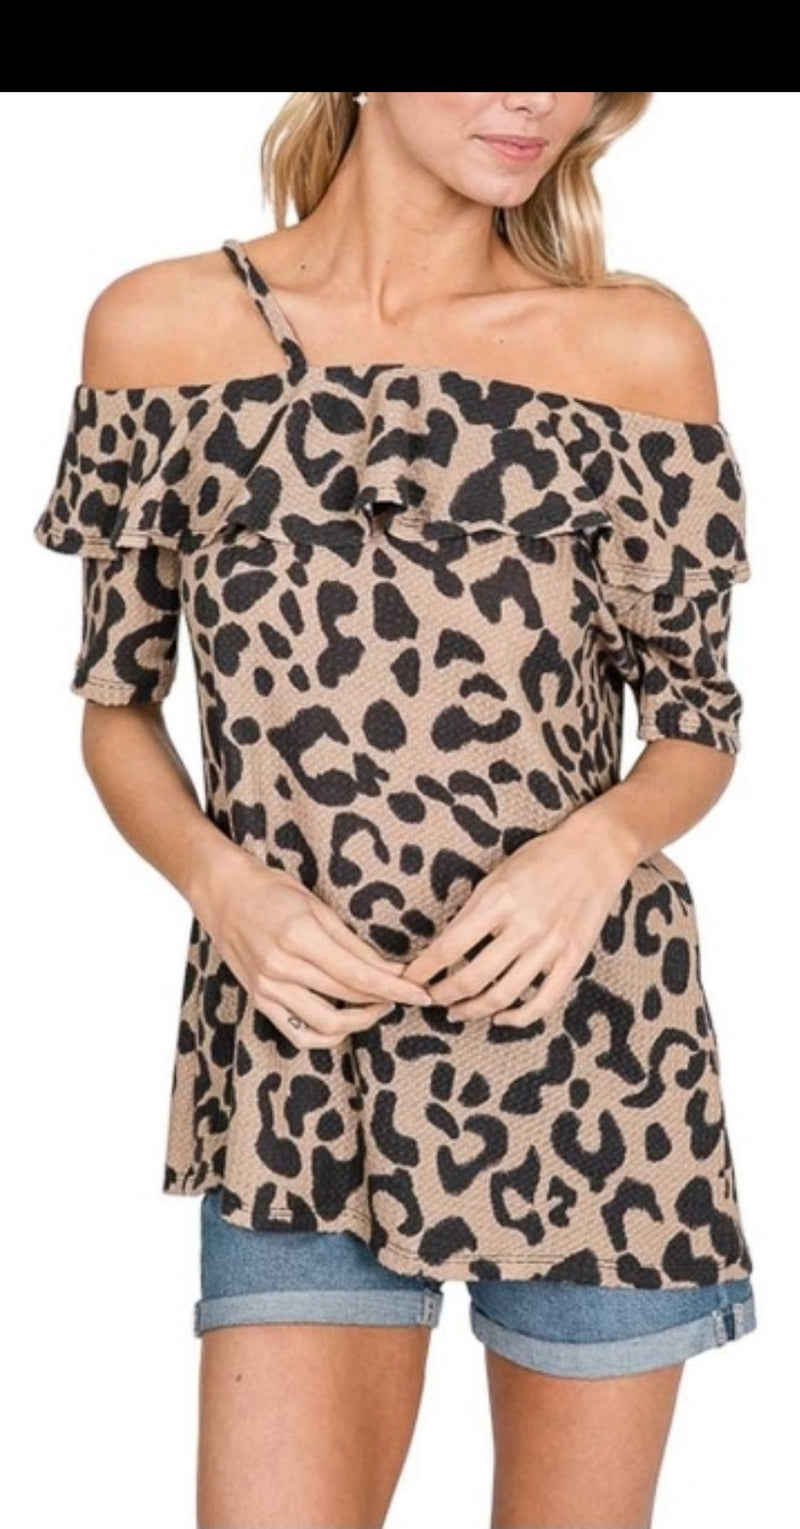 Lara Leopard Top